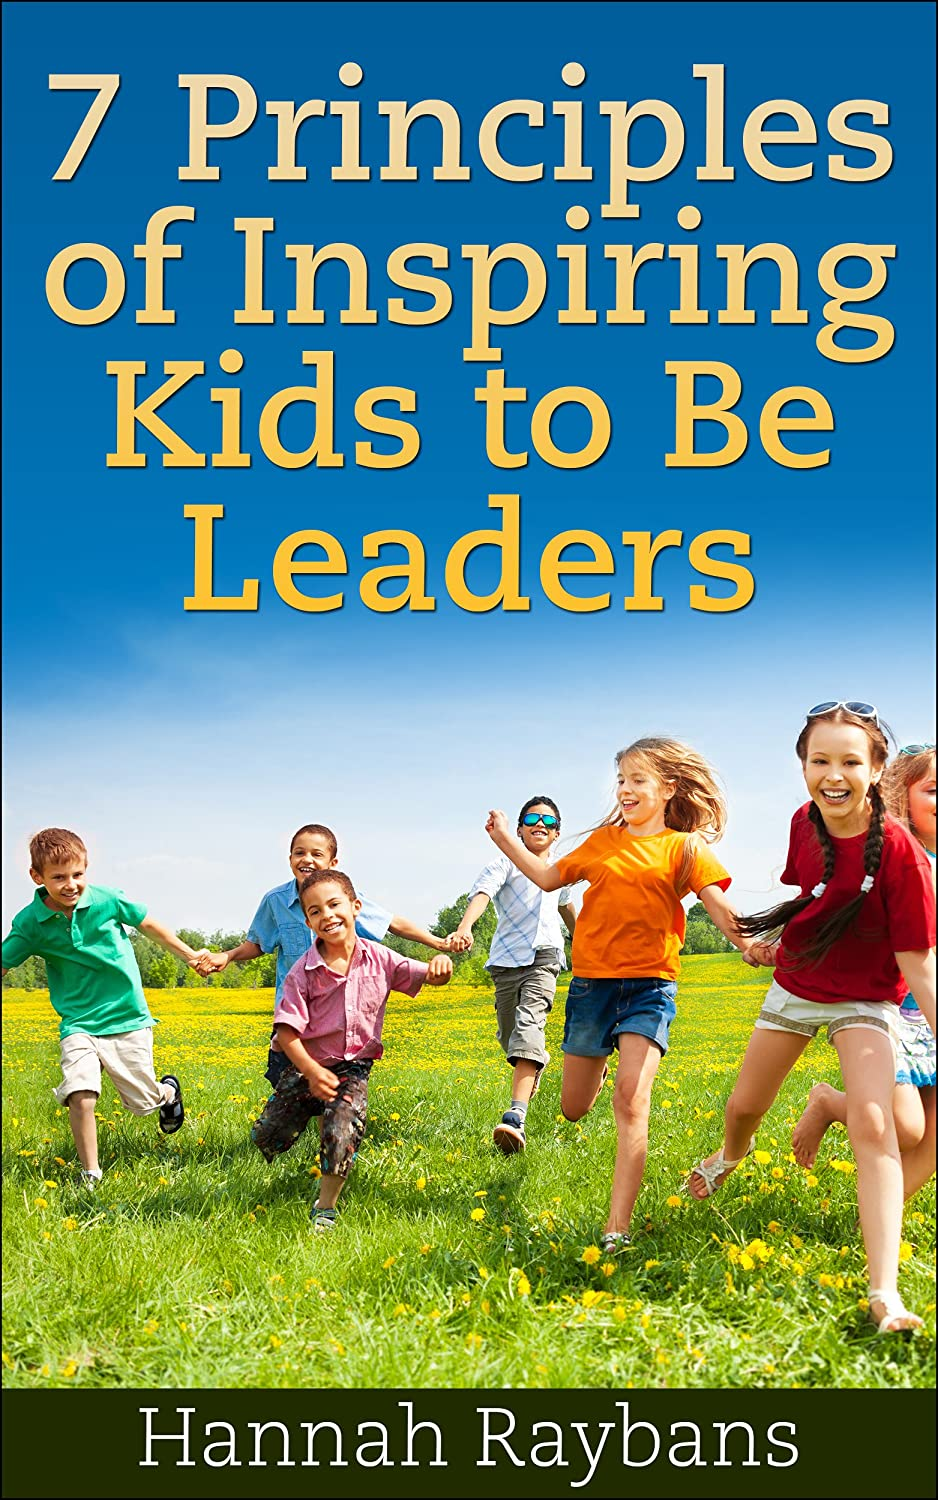 7 Principles of Inspiring Kids to Be Leaders